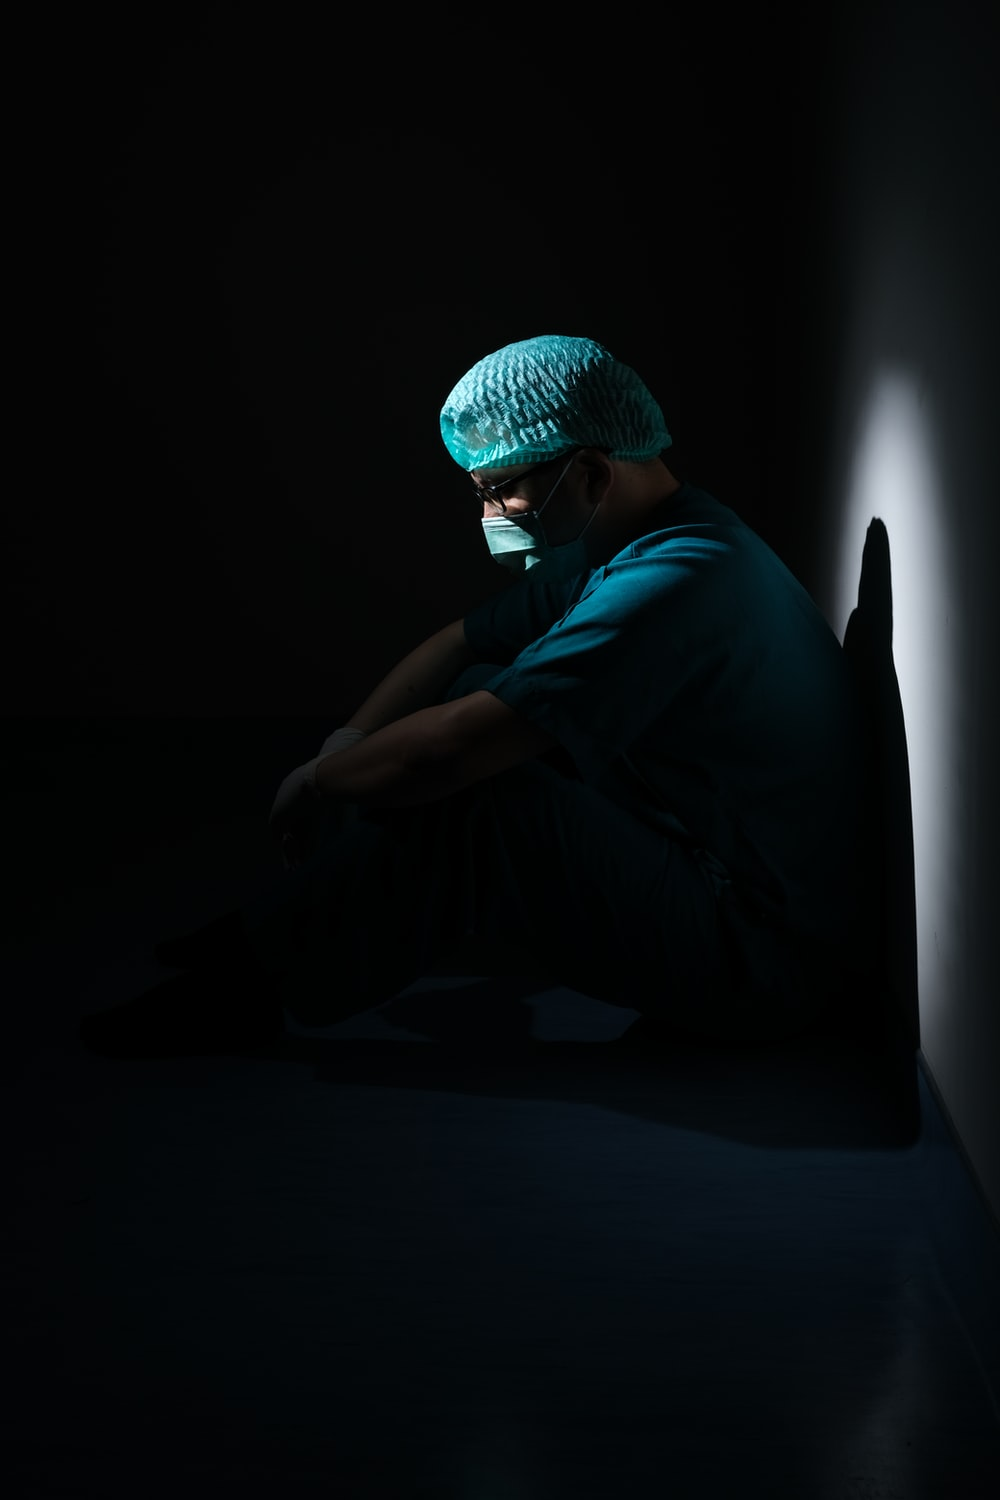 man in green shirt and blue knit cap sitting on floor